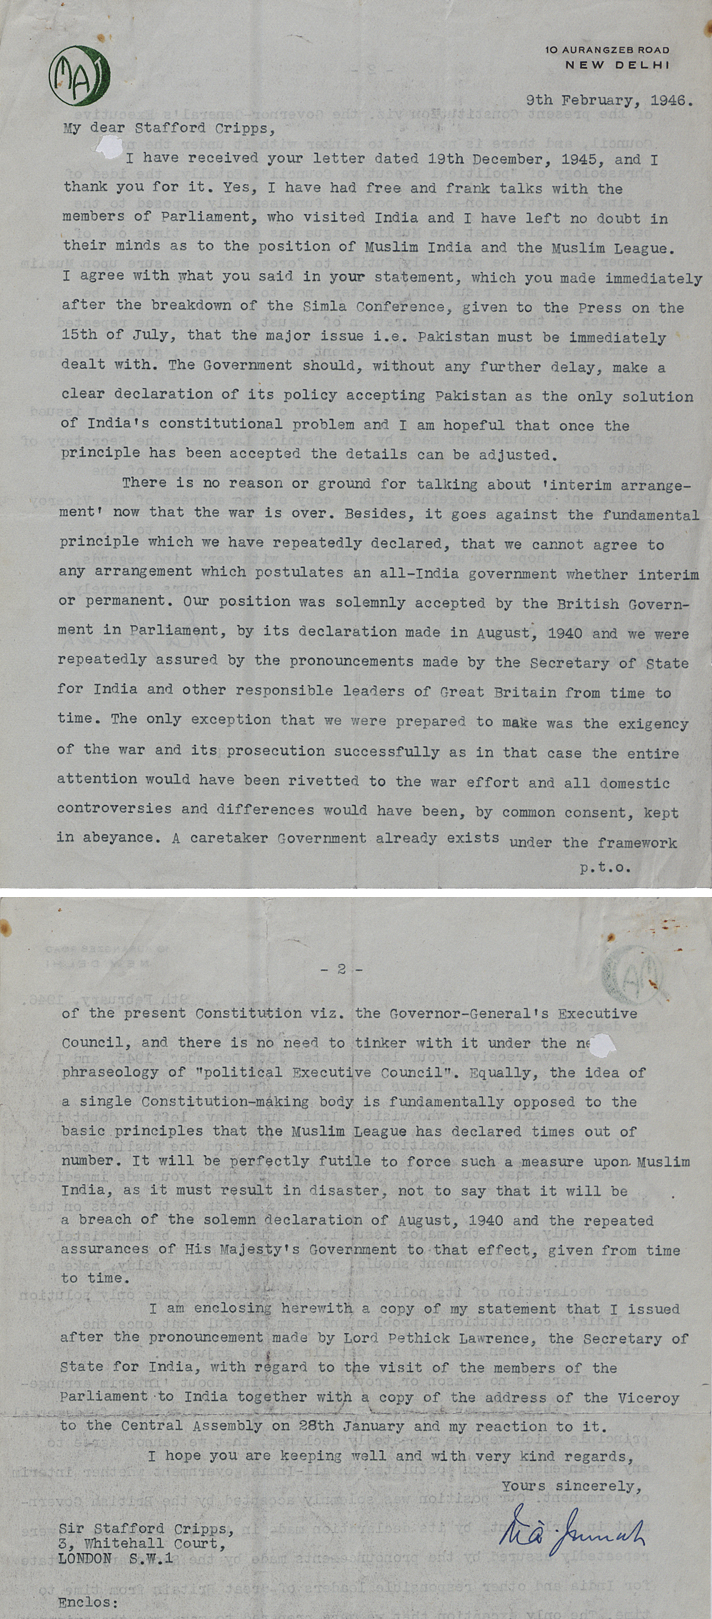 Letter from Muhammad Jinnah to Sir Stafford Cripps, 9th February 1946 (CAB 127/136)